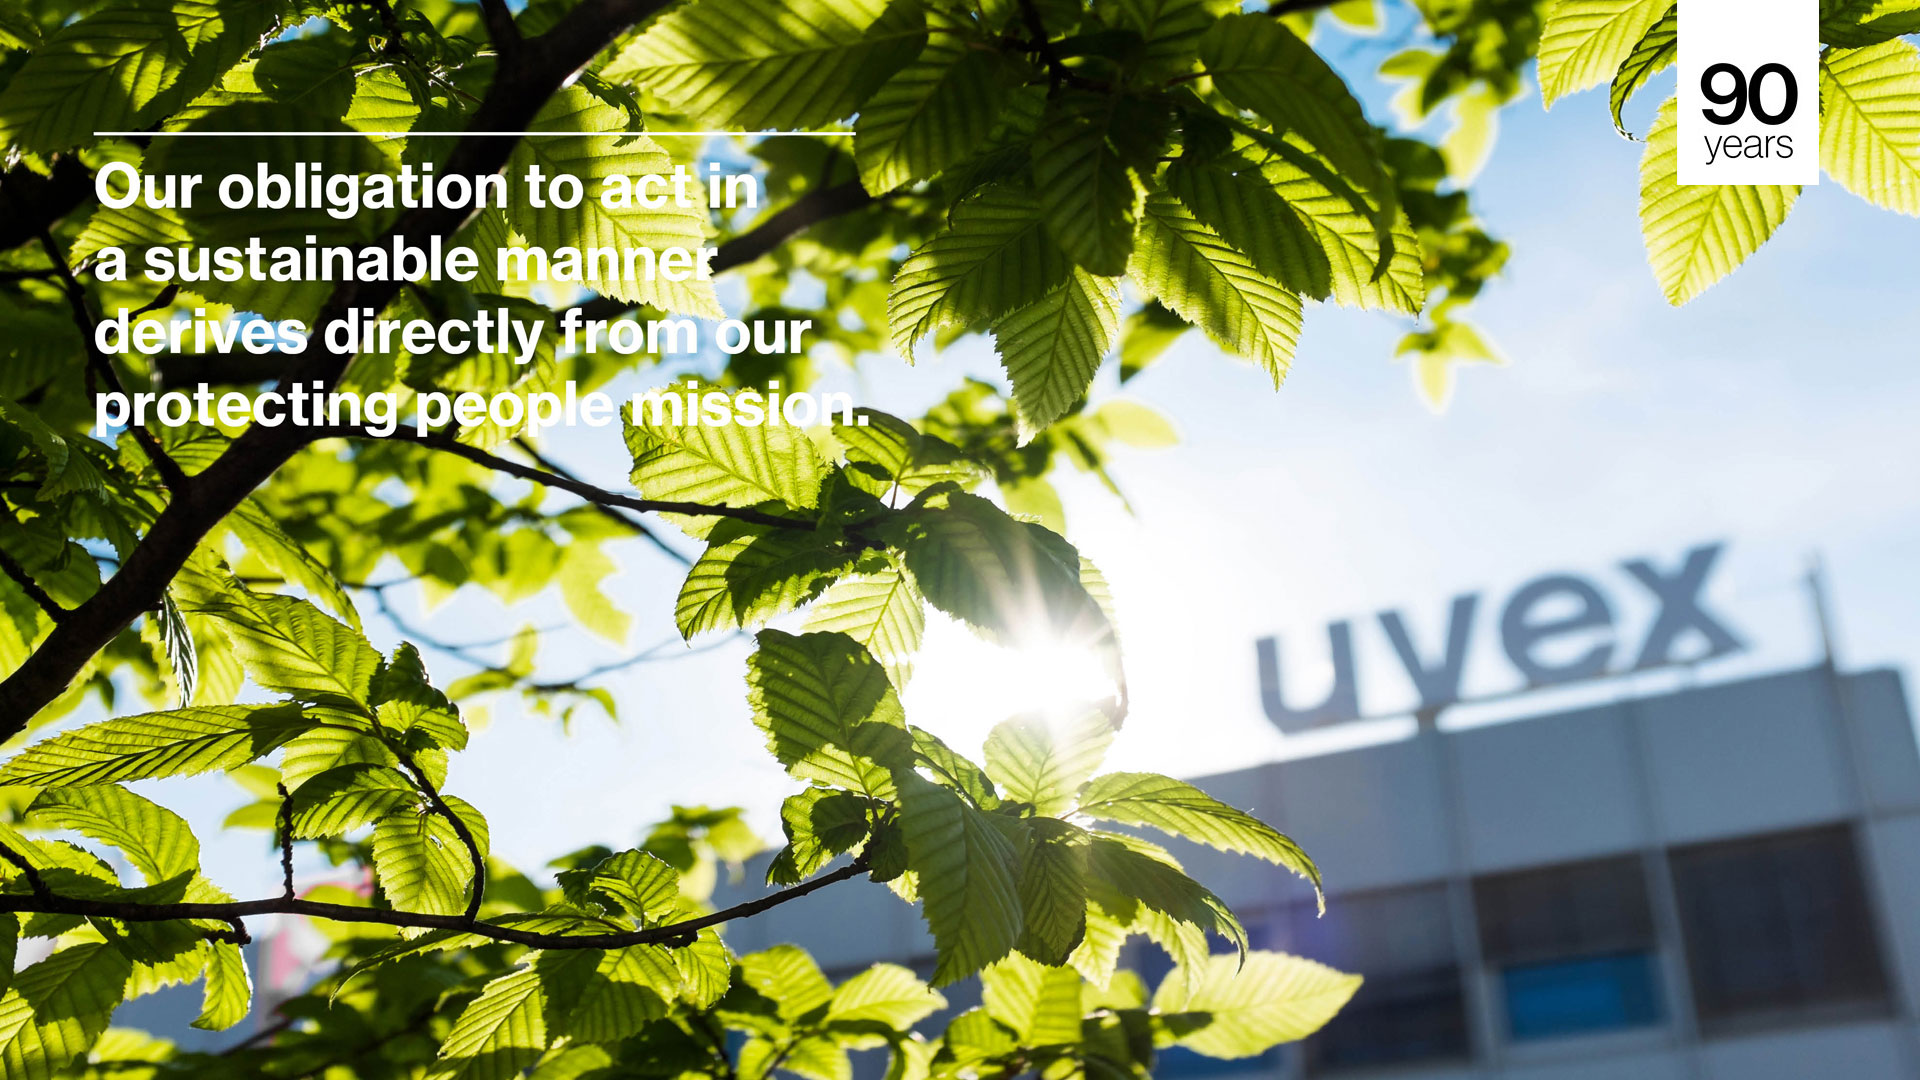 Sustainability of the uvex group